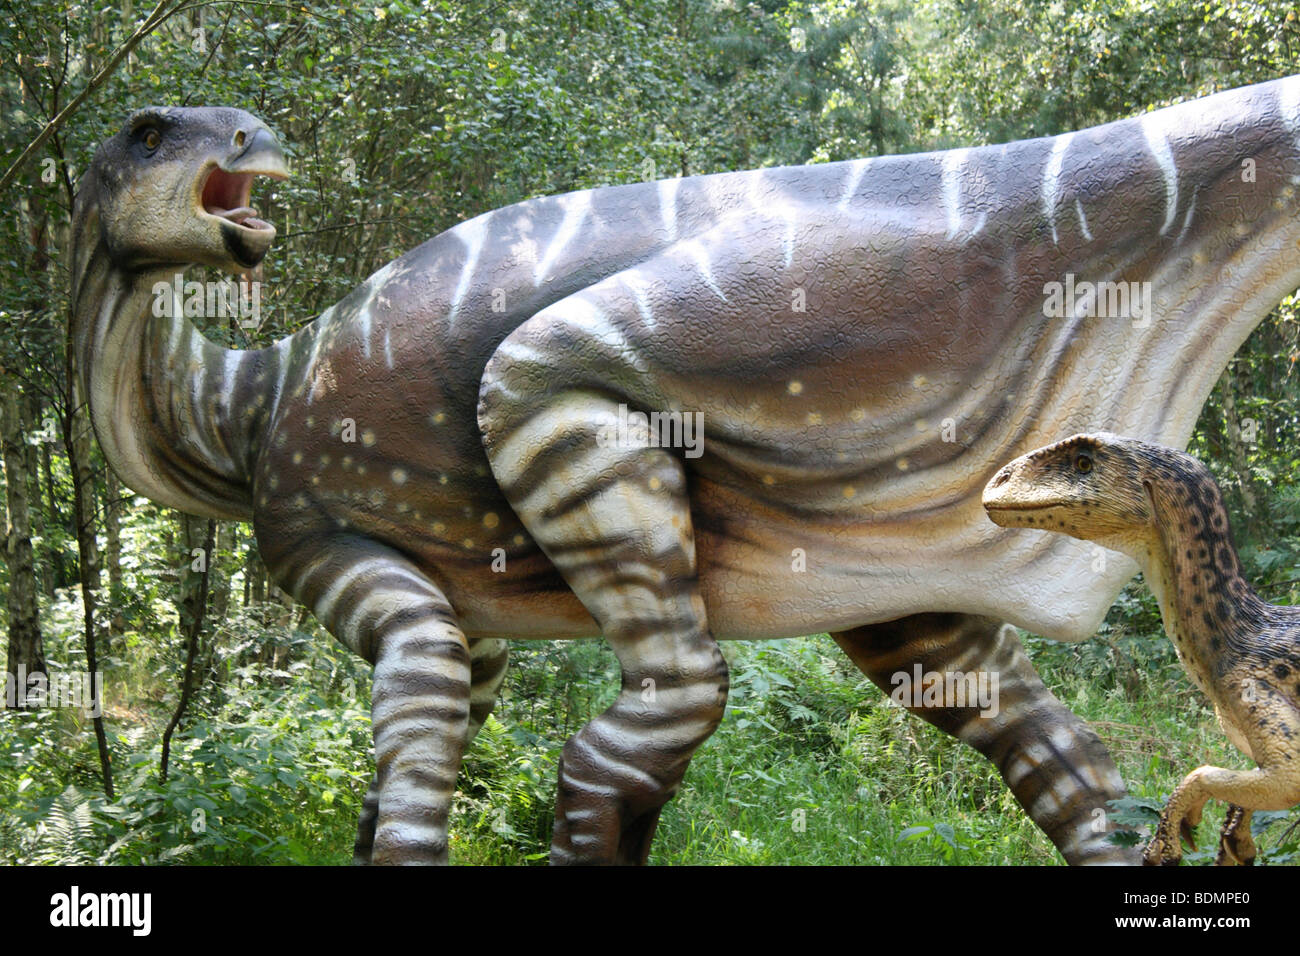 Deinonychus, mother with baby,real size model. 2009 - Stock Image